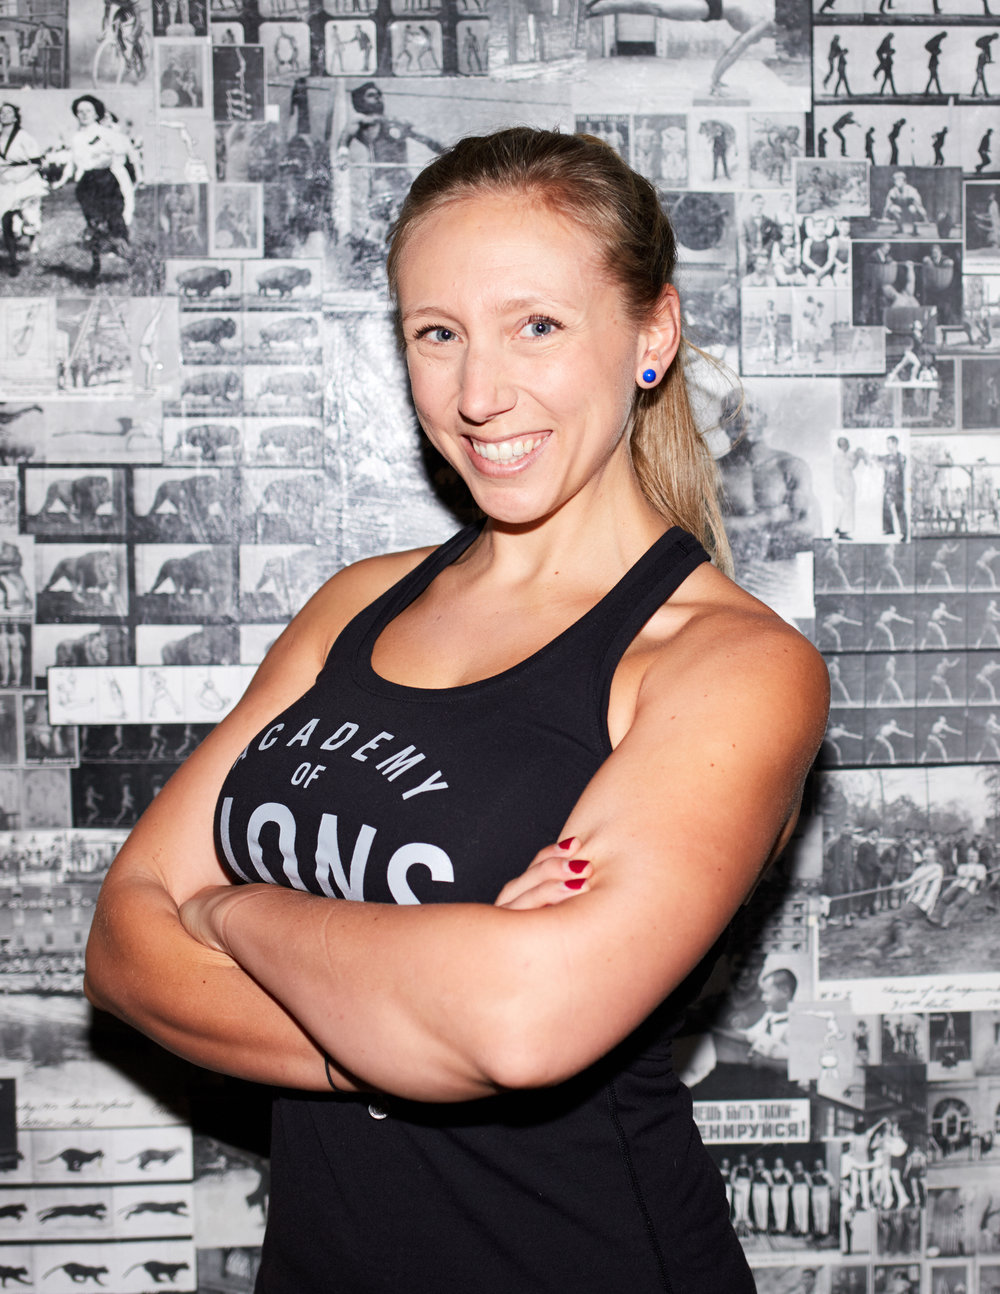 Head Coach Freya    - CrossFit Level 2 - Fit4two PPFS Certification - Body Harmonics Movement &  Exercise for Pregnancy - Body Harmonics Towards a Healthy    Pelvic Floor - Agatsu Olympic Weightlifting &  Power Lifting - Agatsu Kettlebell Level 1 - Agatsu Kettlebell Level 2  -  Agatsu Assessment Course   - Agatsu Lower Body Mobility Level 1 - Agatsu Upper Body Mobility Level 1 - Postnatal Anatomy and Physiology